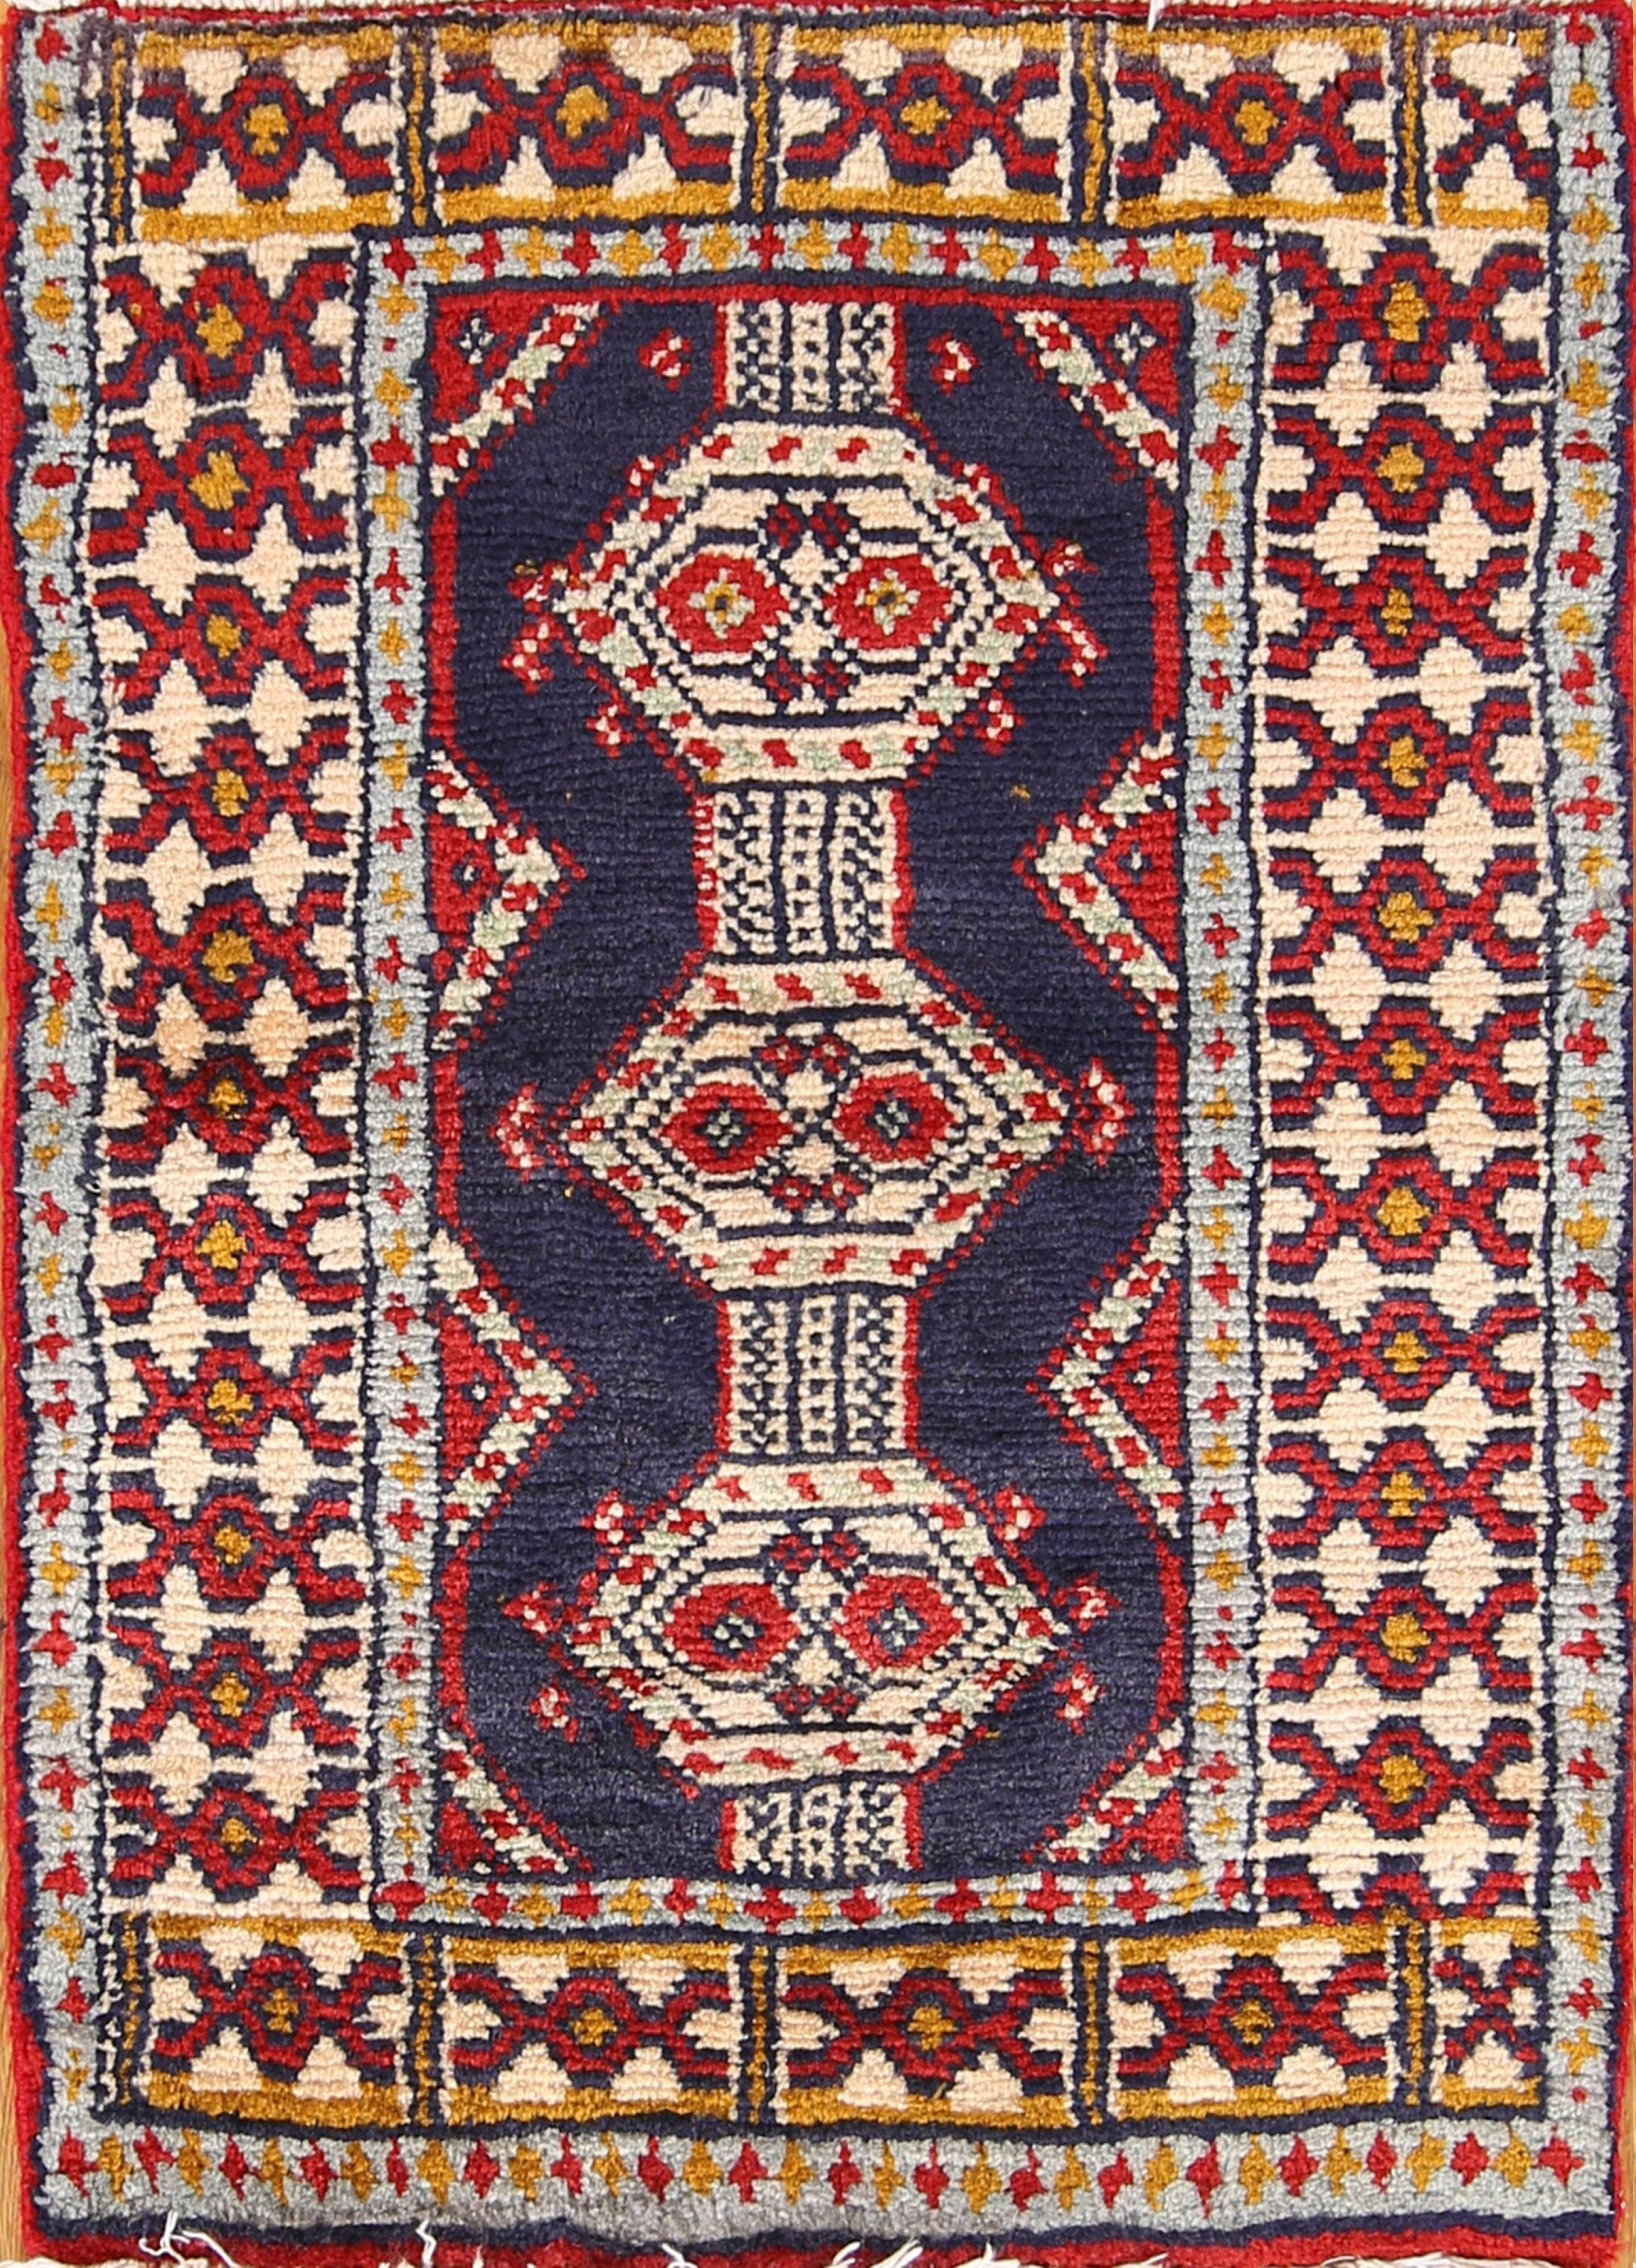 One-of-a-Kind Traditional Geometric Tribal Turkoman Balouch Persian Hand-Knotted 1'9